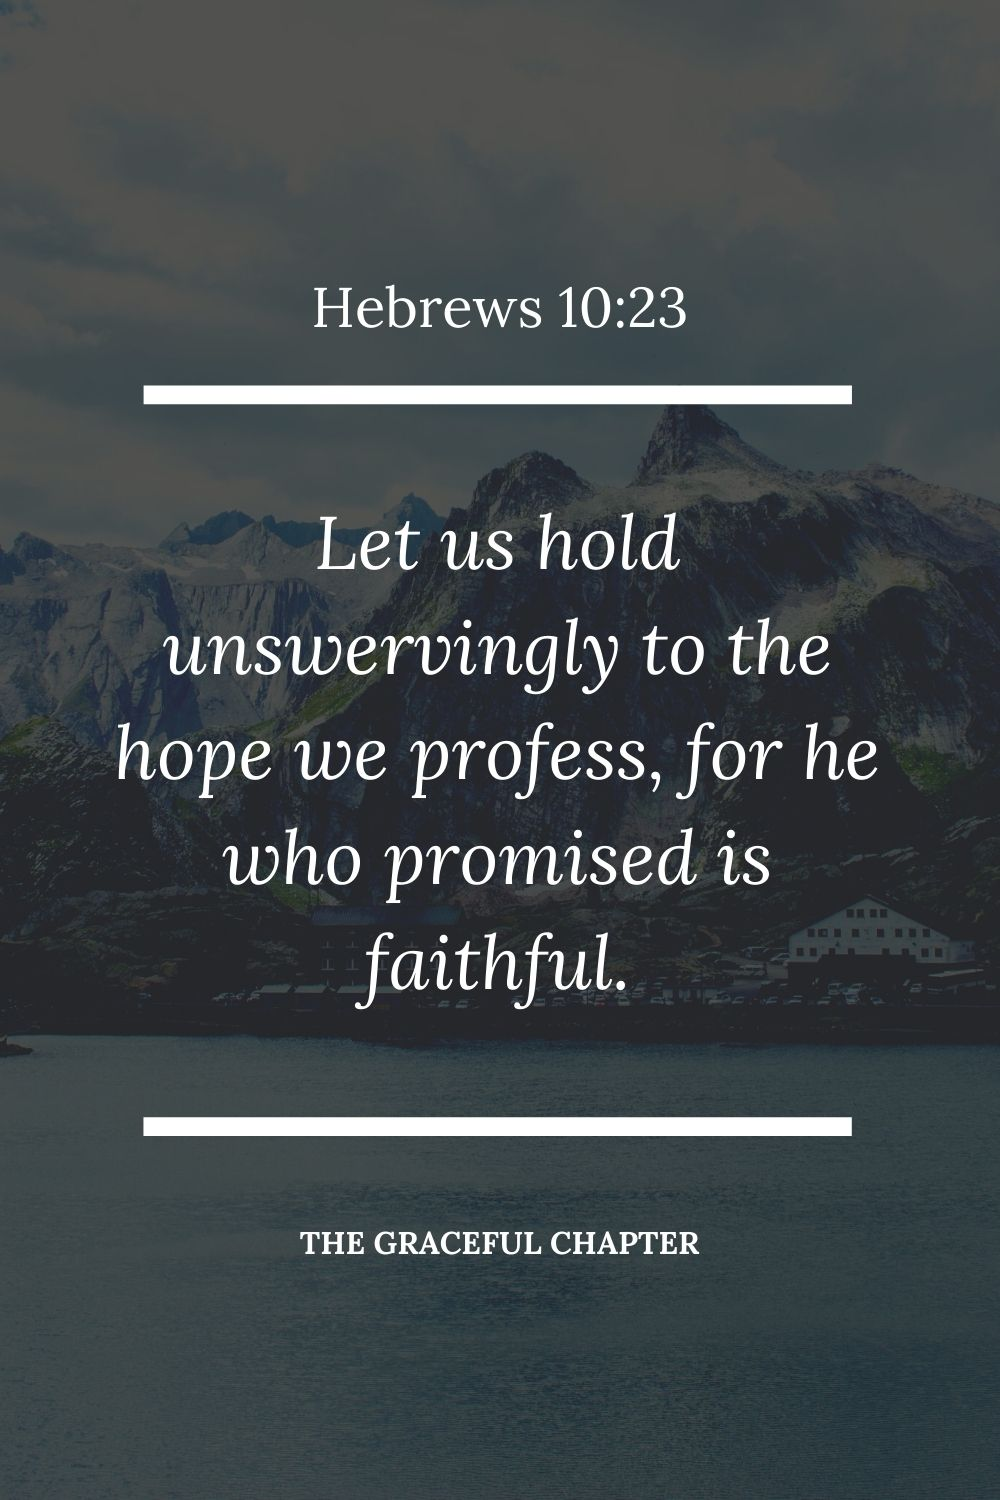 Let us hold unswervingly to the hope we profess, for he who promised is faithful.  Let us hold unswervingly to the hope we profess, for he who promised is faithful.  Hebrews 10:23